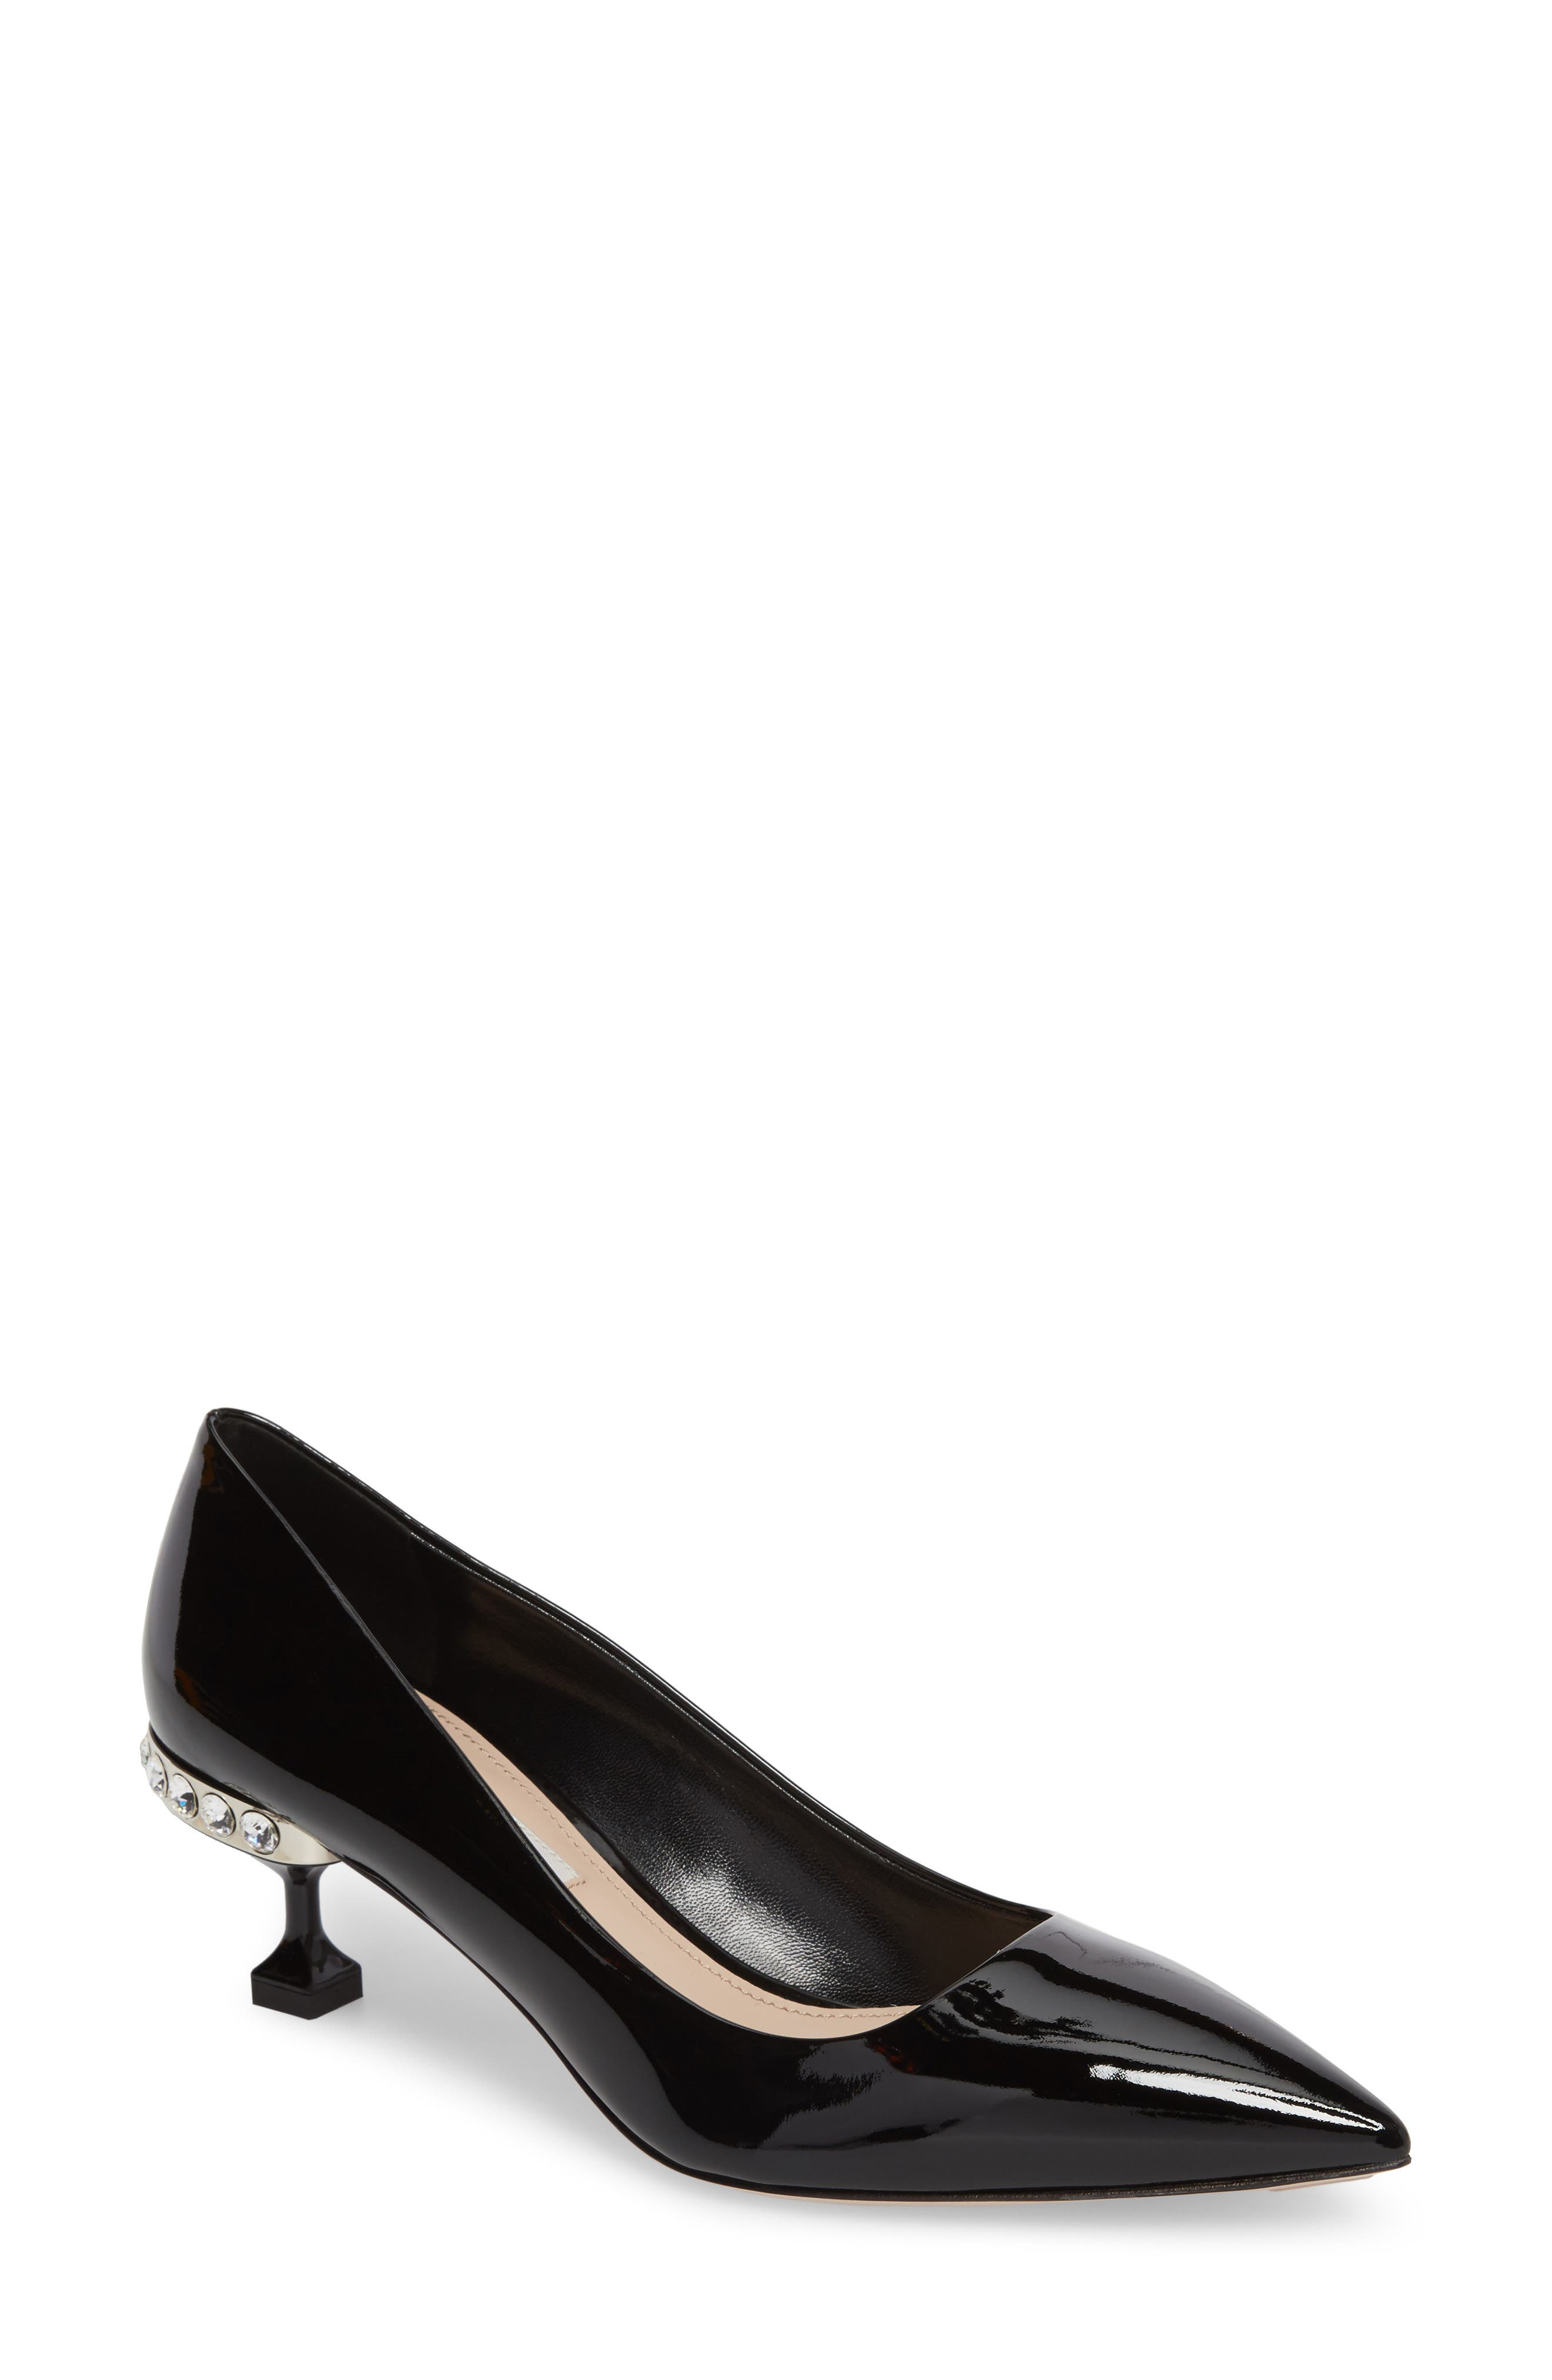 Crystal Heel Pump,                             Main thumbnail 1, color,                             BLACK